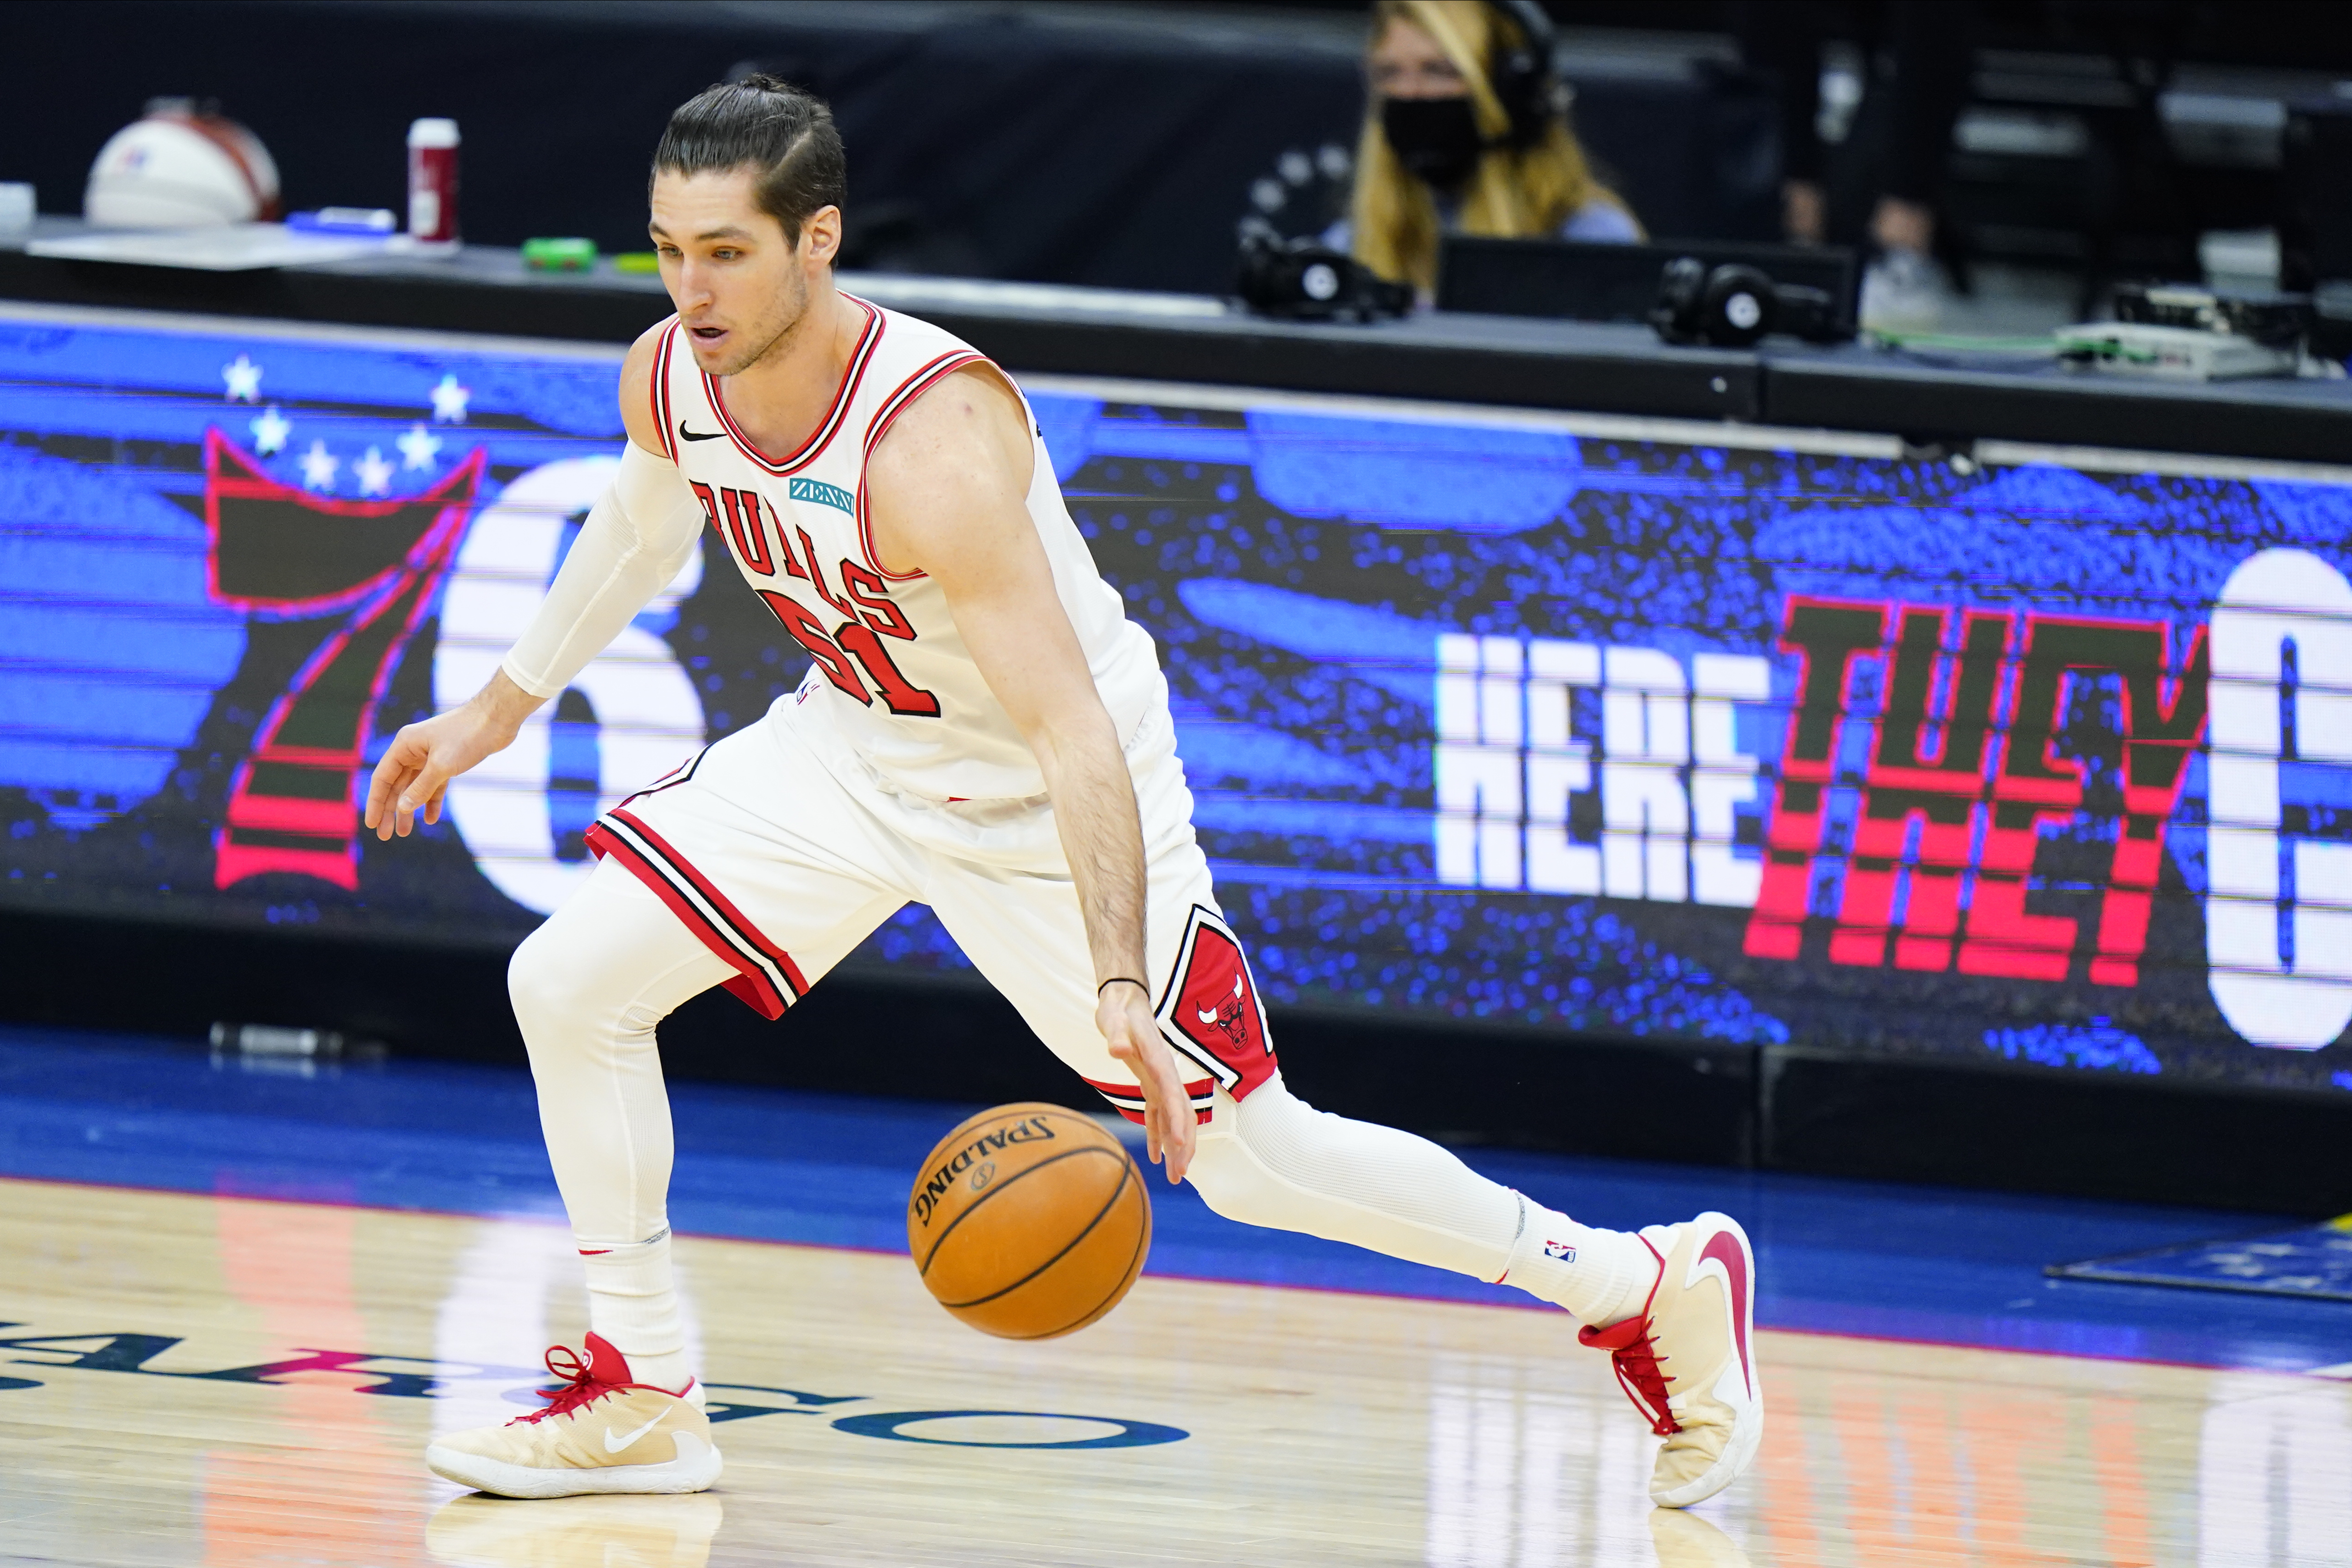 """Whether it be practice or shootarounds or whenever he's called upon, you know exactly what you're going to get,'' Bulls coach Billy Donovan said of Ryan Arcidiacono."